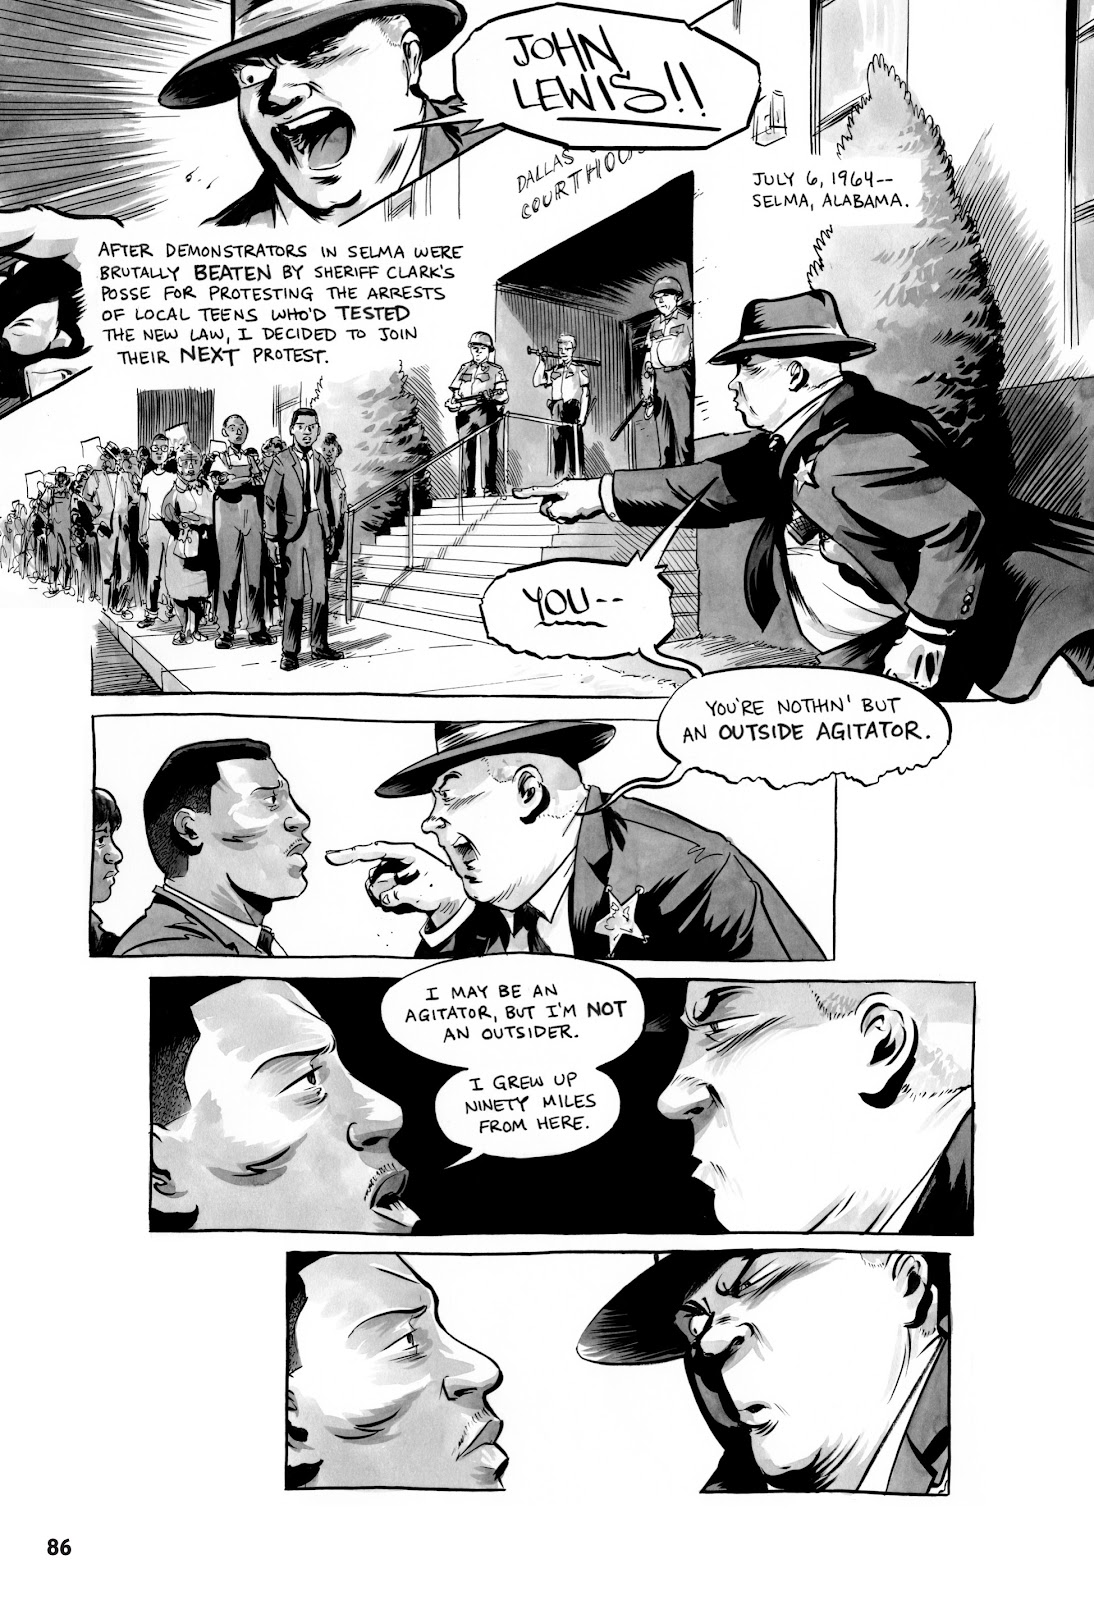 March 3 Page 83